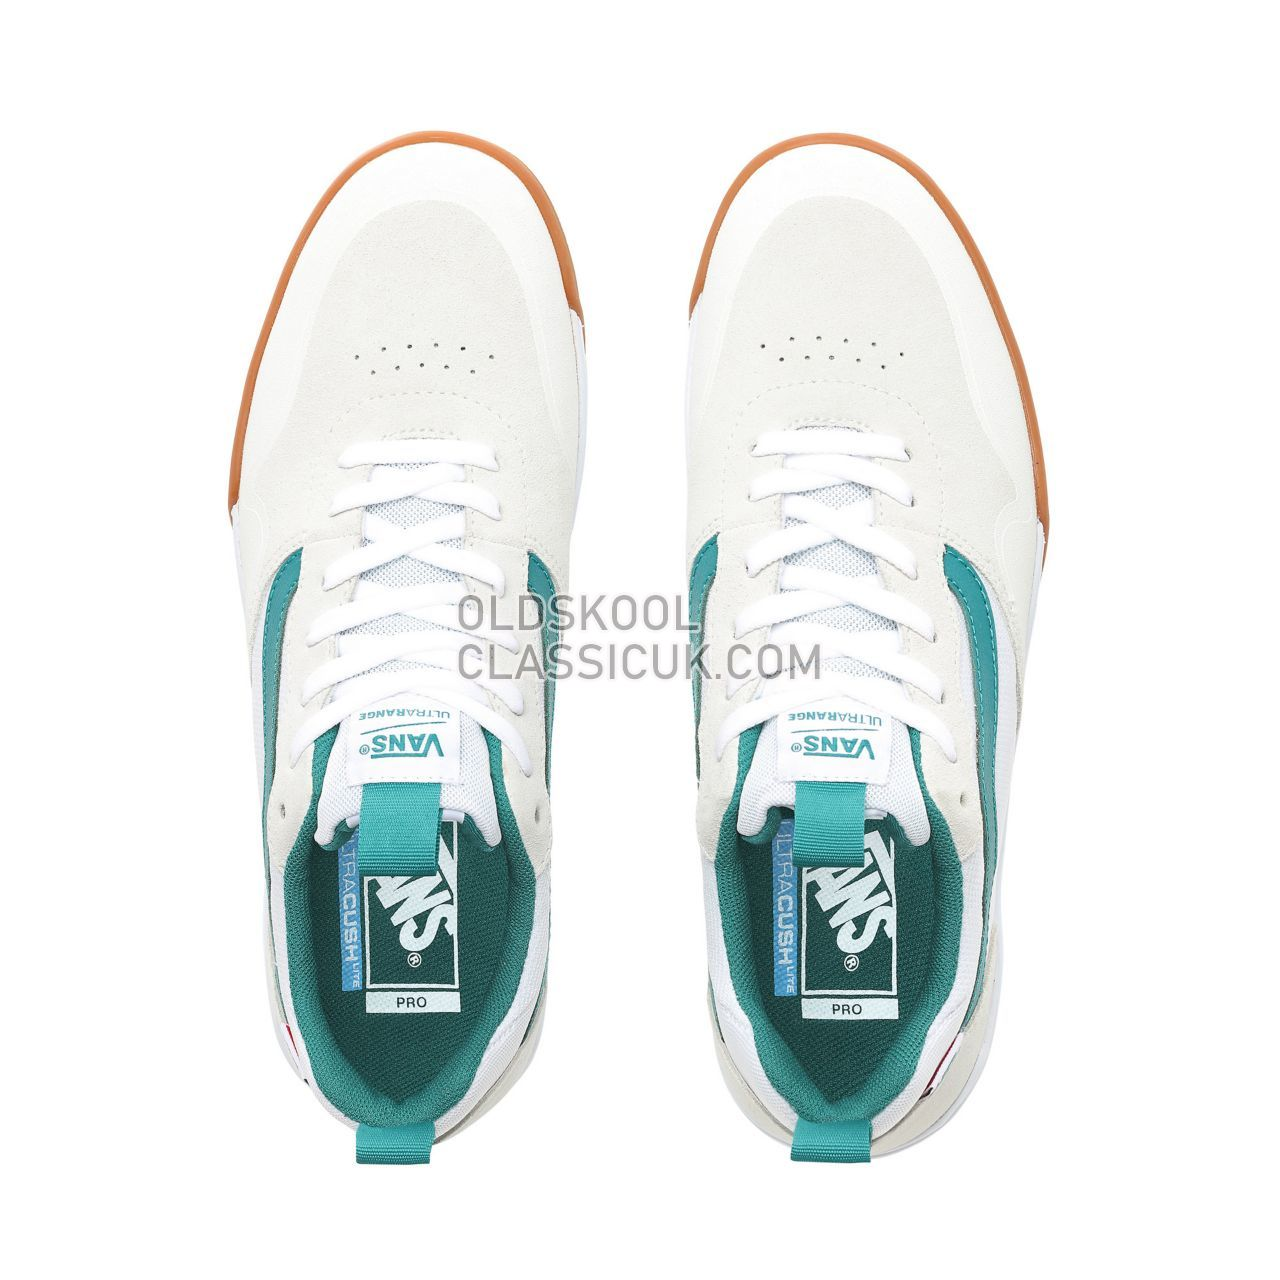 Vans Ultrarange Pro 2 Sneakers Mens Marshmallow/Quetzal Green VN0A3WLGVGY Shoes